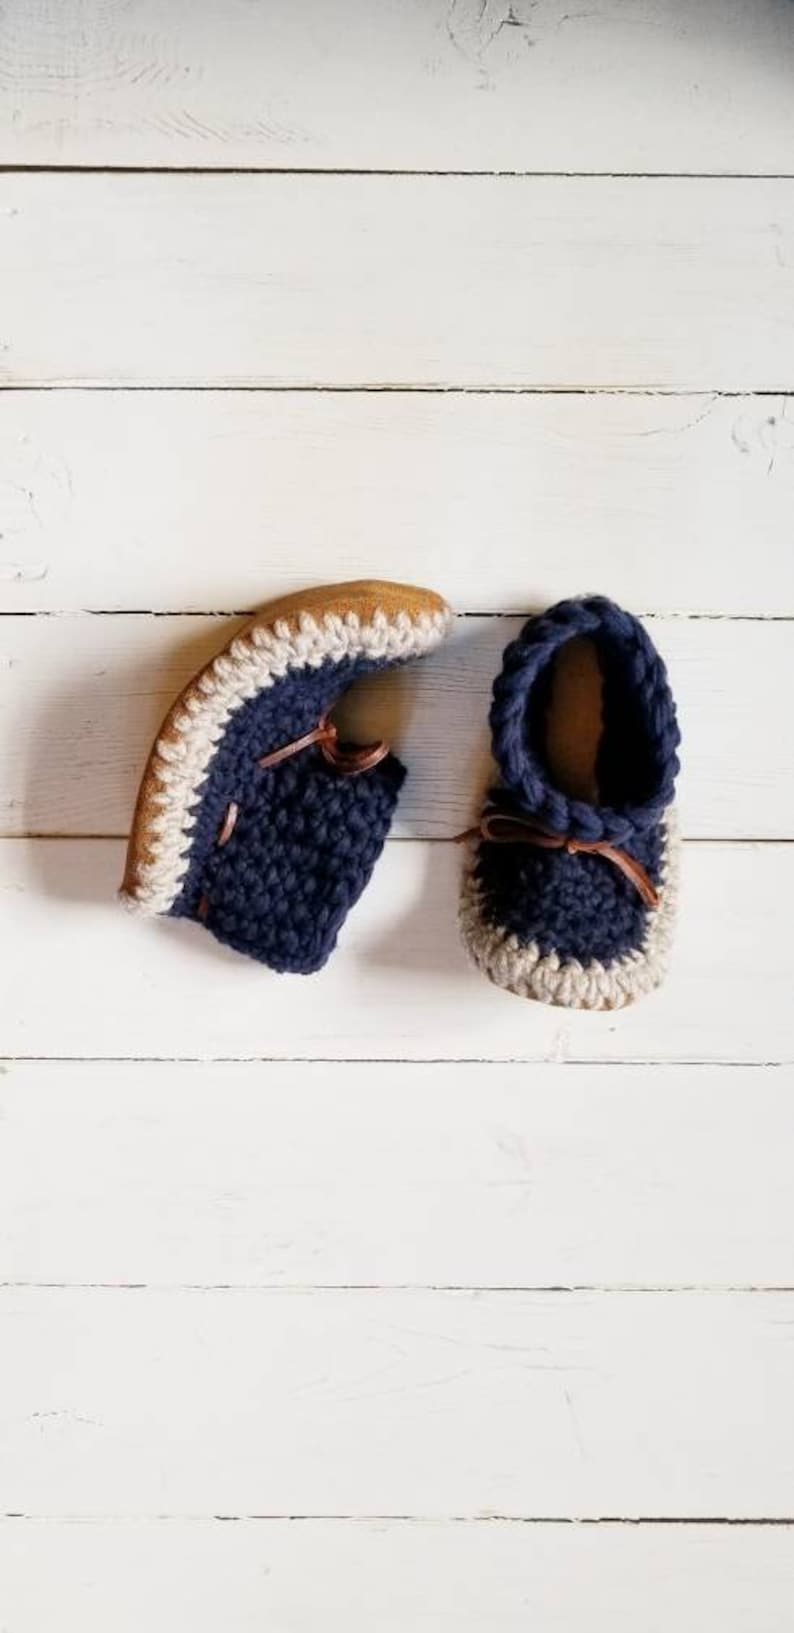 eff8f4fcc3672 Mens navy blue slippers by EcoSoles, Crochet slippers, Men's mukluks, Wool  slippers, Leather sole slippers, Sheepskin lined slippers